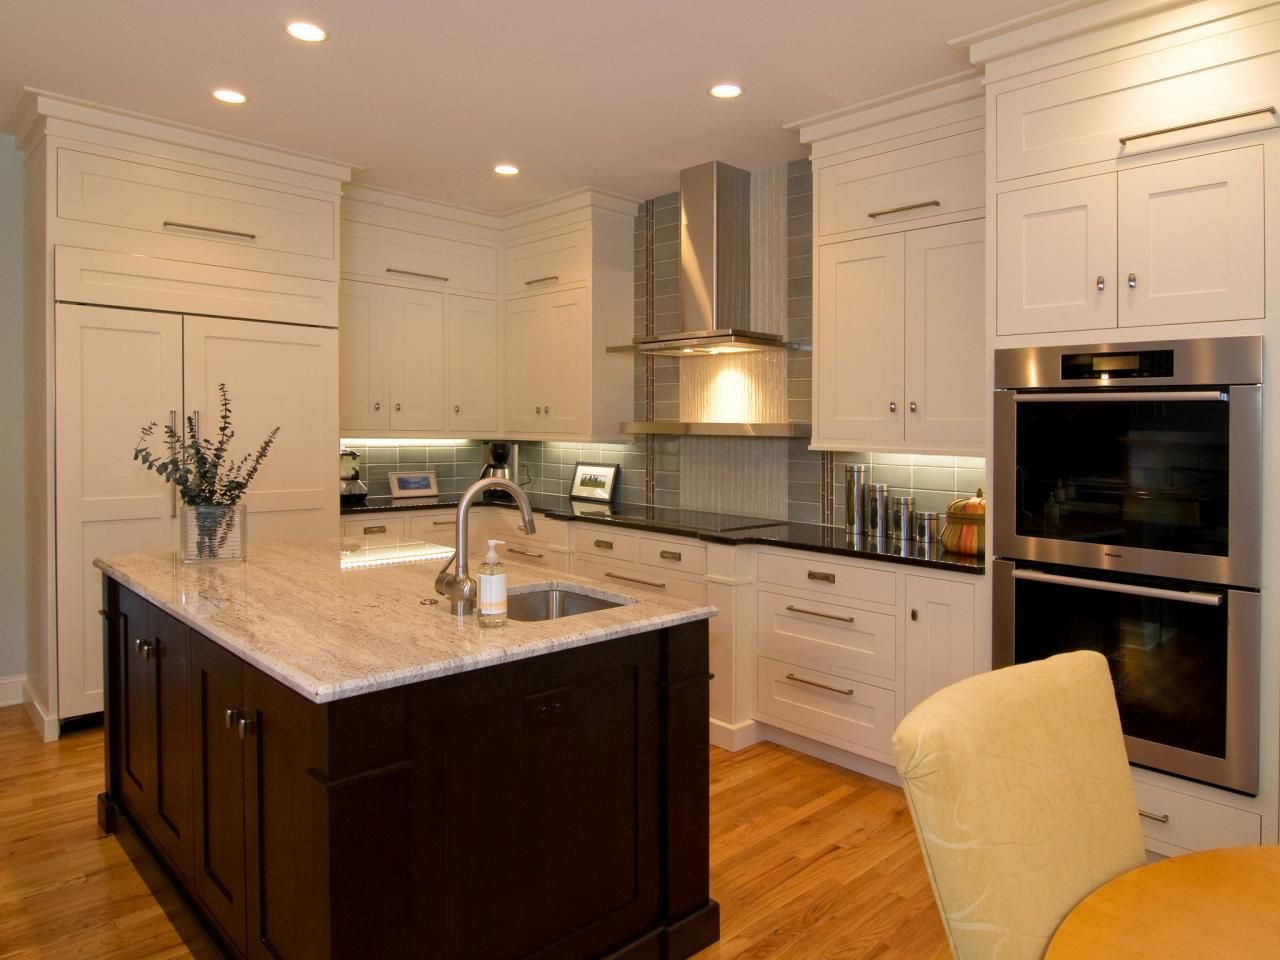 Mary Beth Hartgrove Of Metropolitan Kitchen Bath Transformed A Cramped Kitchen With Little Contemporary Kitchen Kitchen Cabinet Styles Shaker Style Kitchens